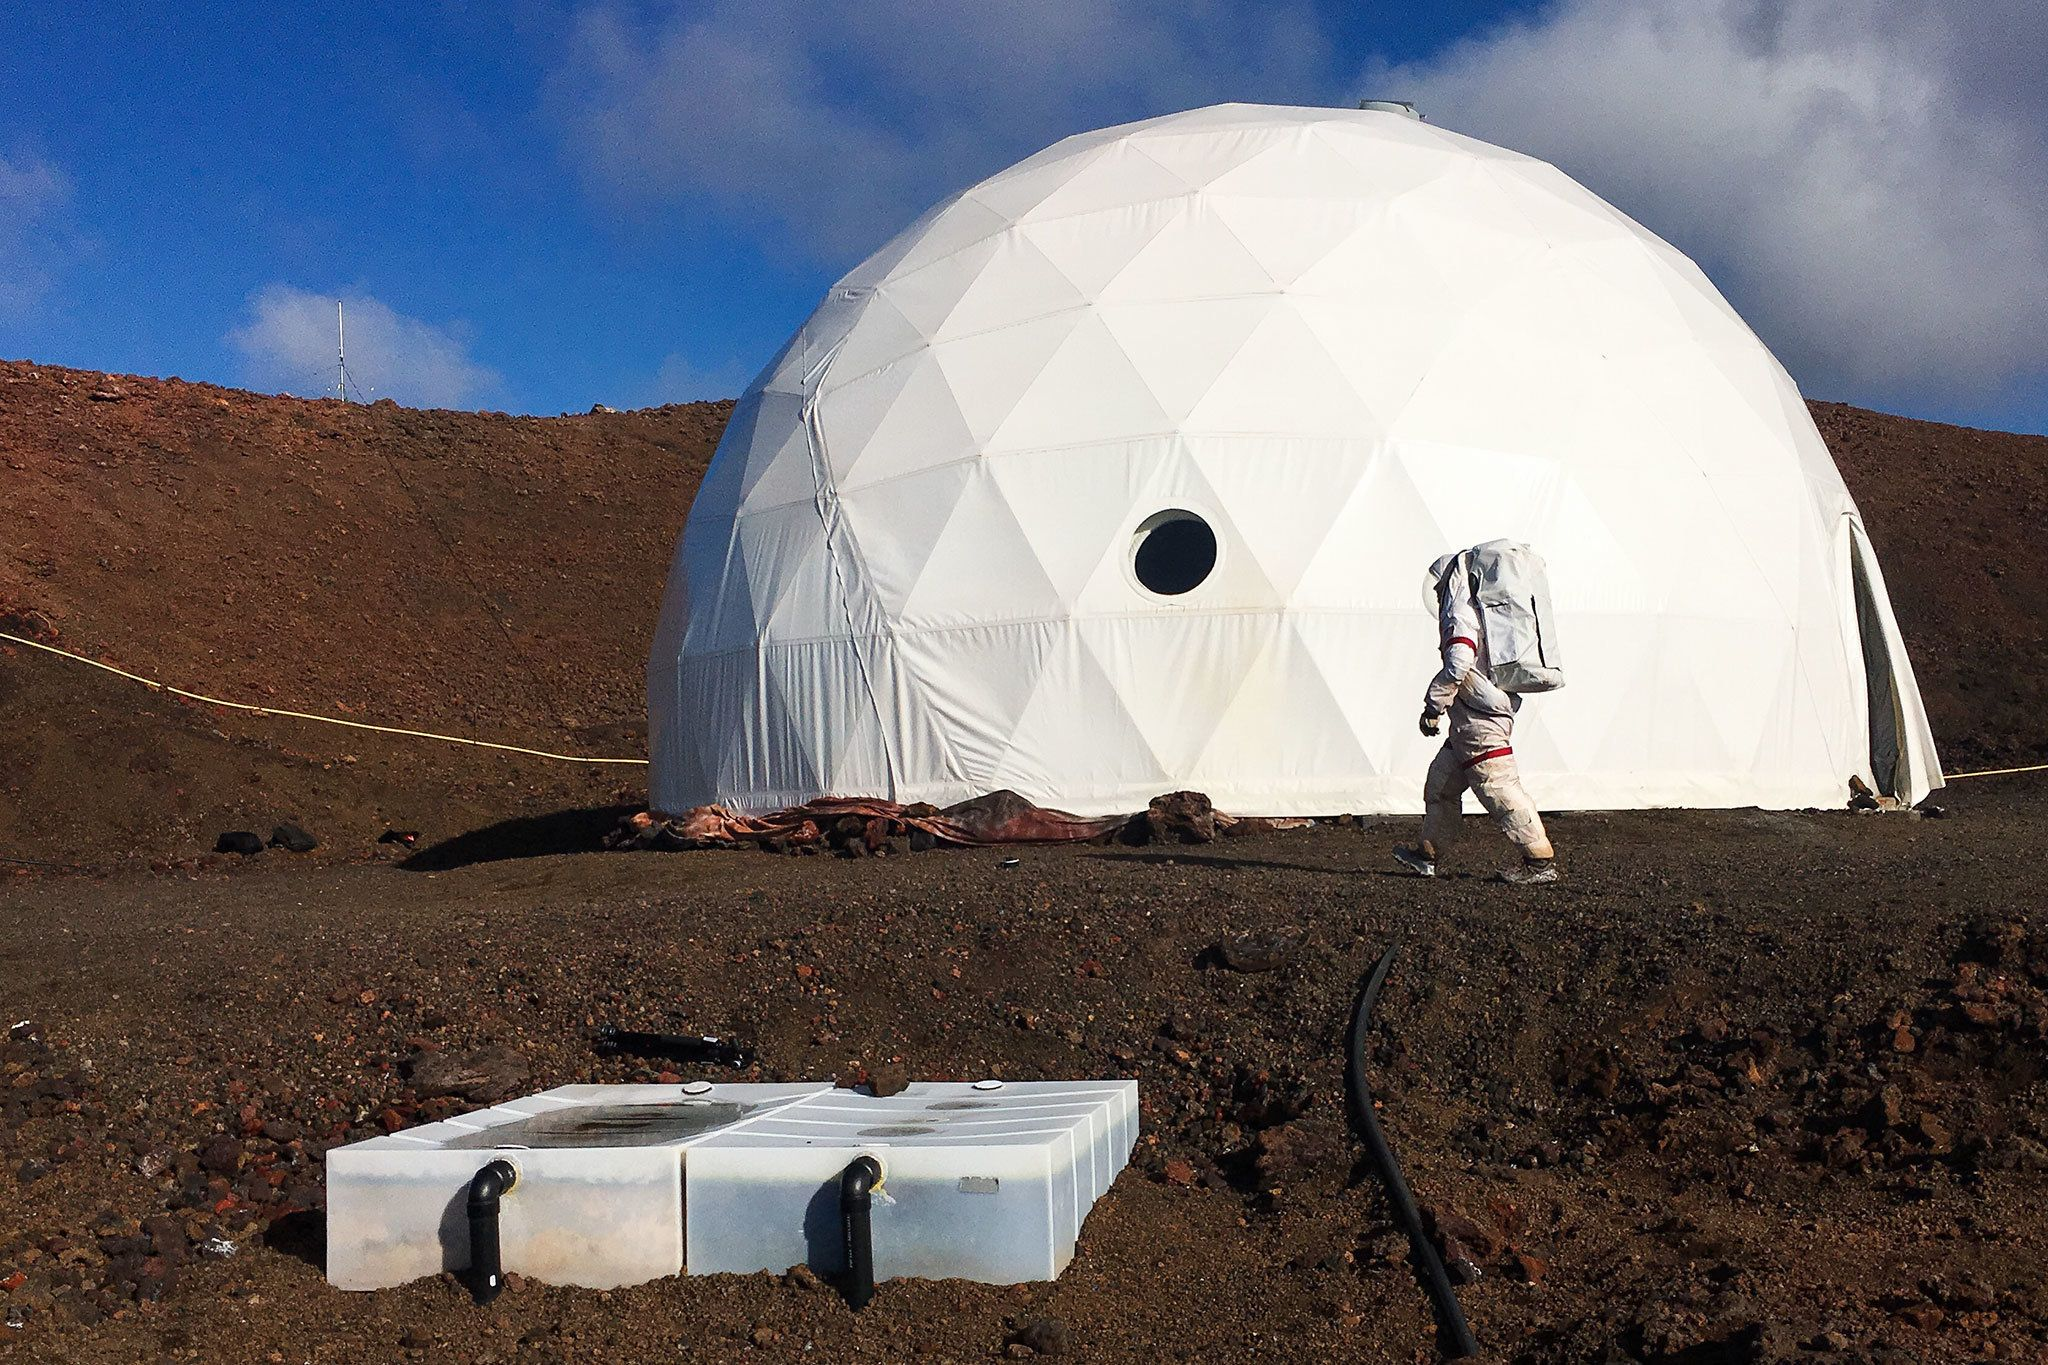 Your home away from home is a large dome, from which you will not exit without a space suit.